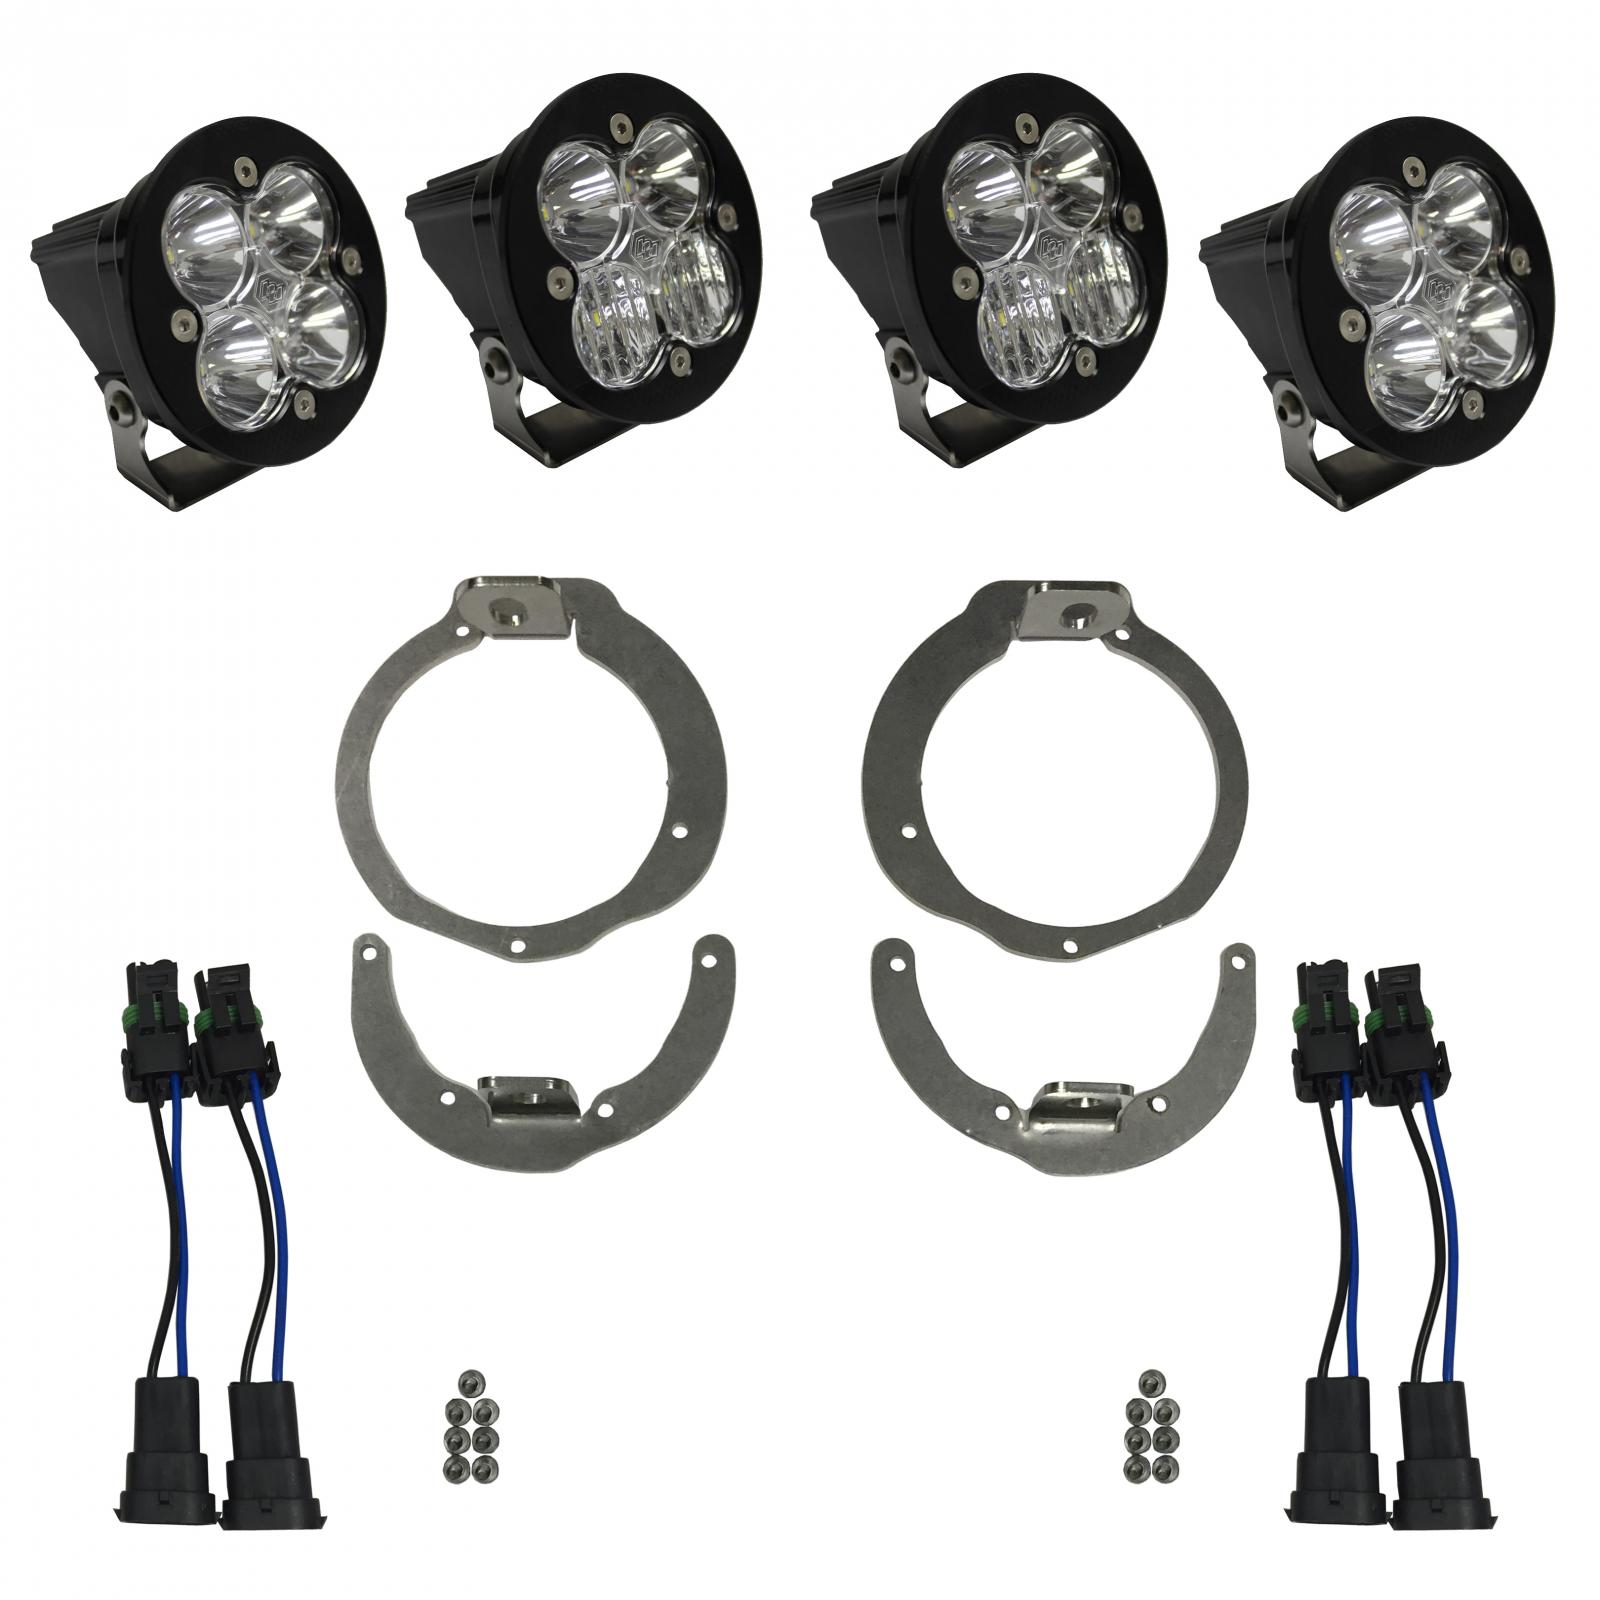 Baja Designs Can-Am Headlight Kit 13-16 Maverick/11-16 Renegade Kit Sportsmen